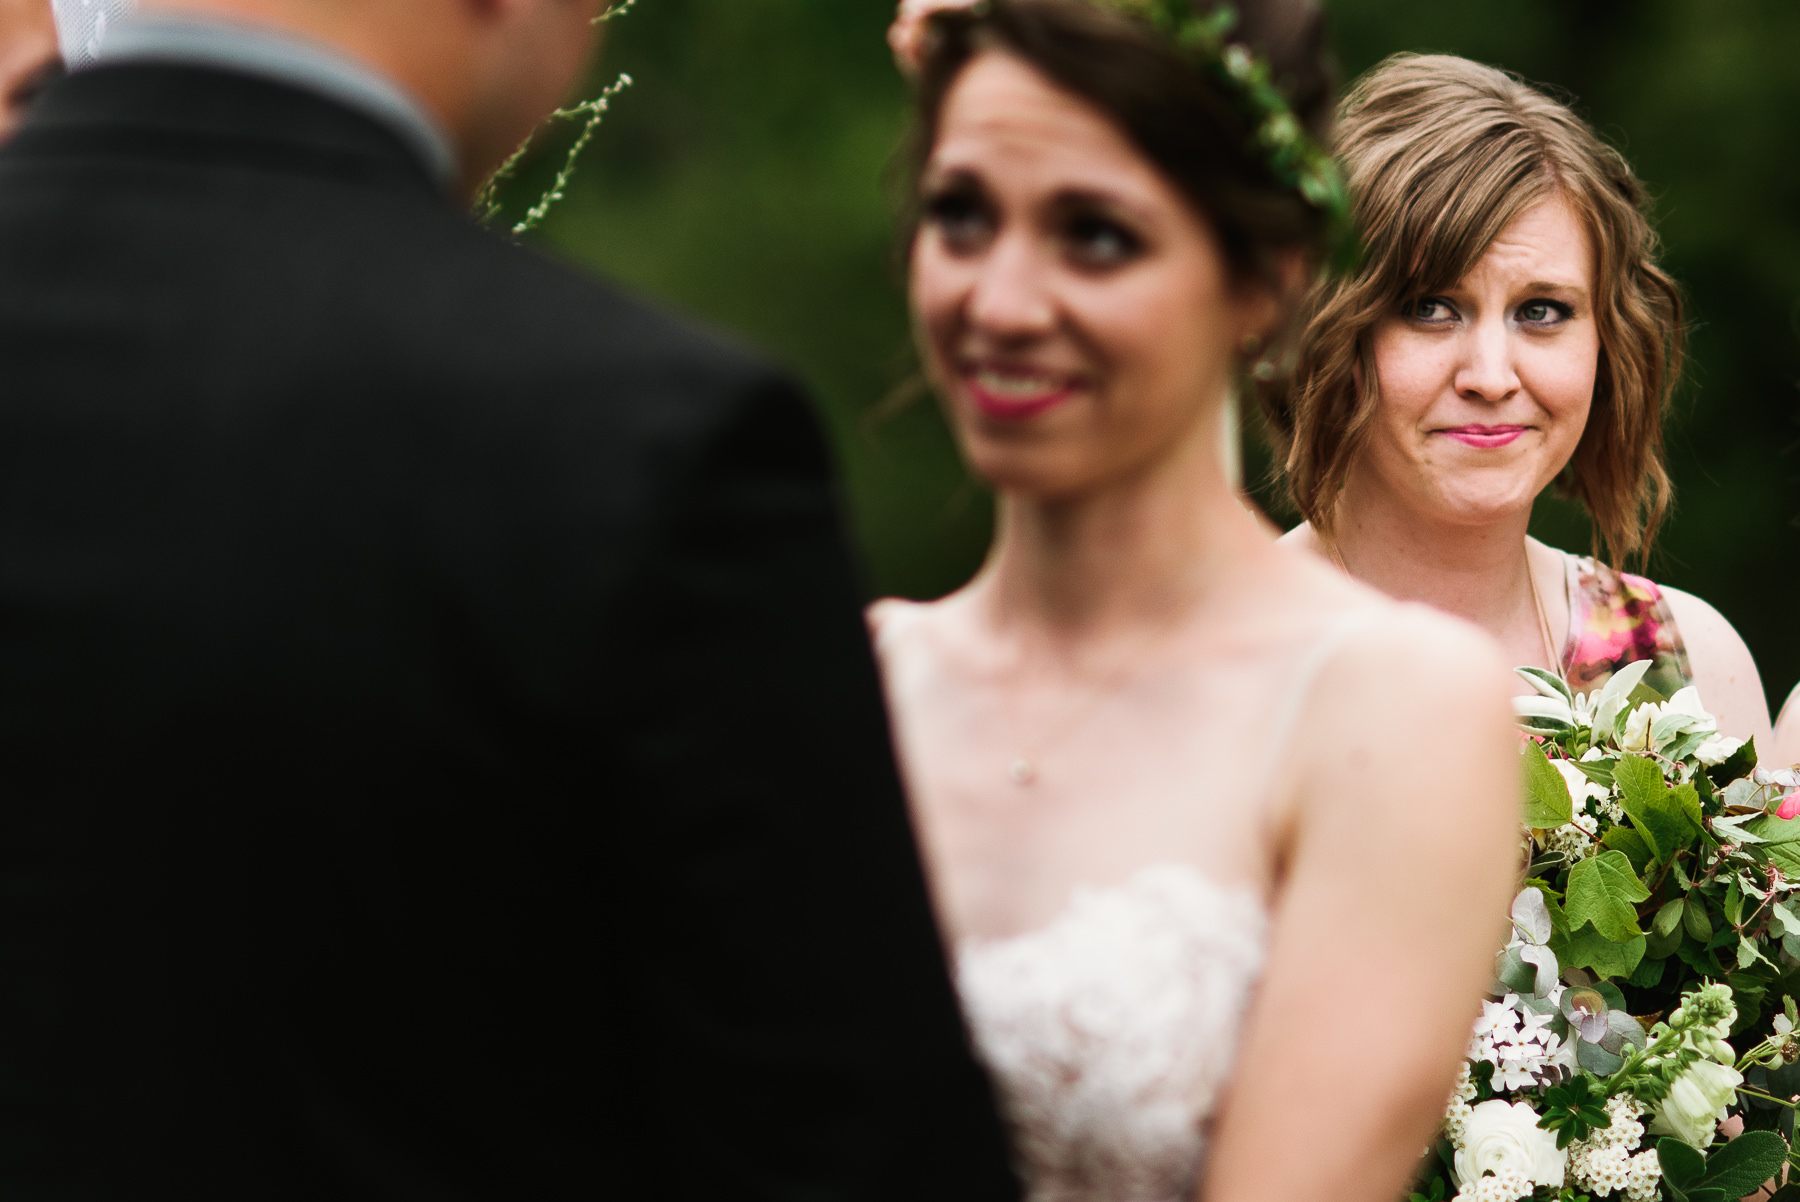 lakedale wedding ceremony crying bridesmaid